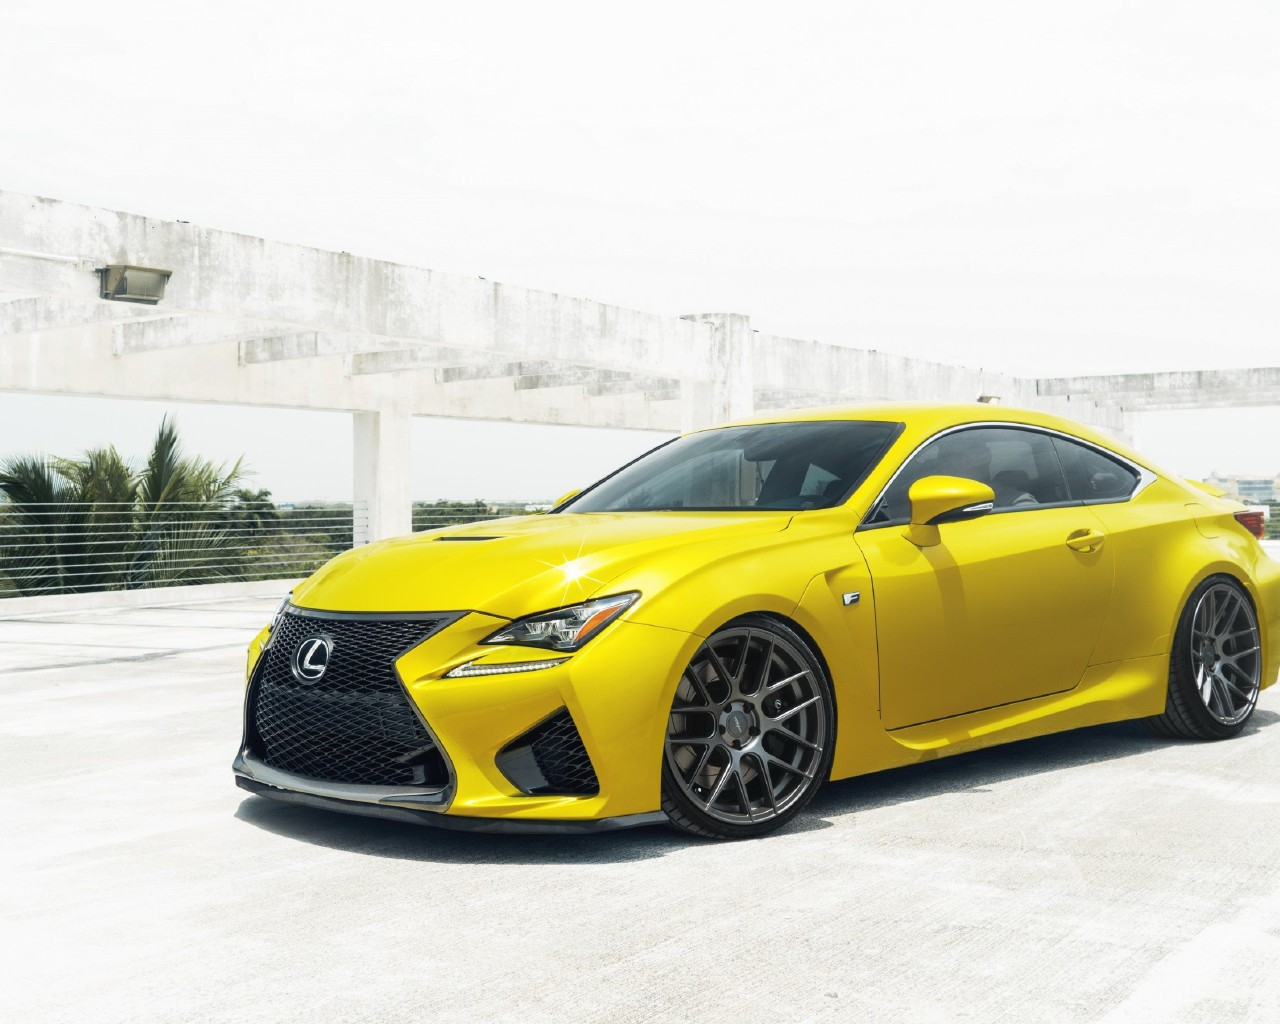 50+ Lexus RCF Wallpaper on WallpaperSafari